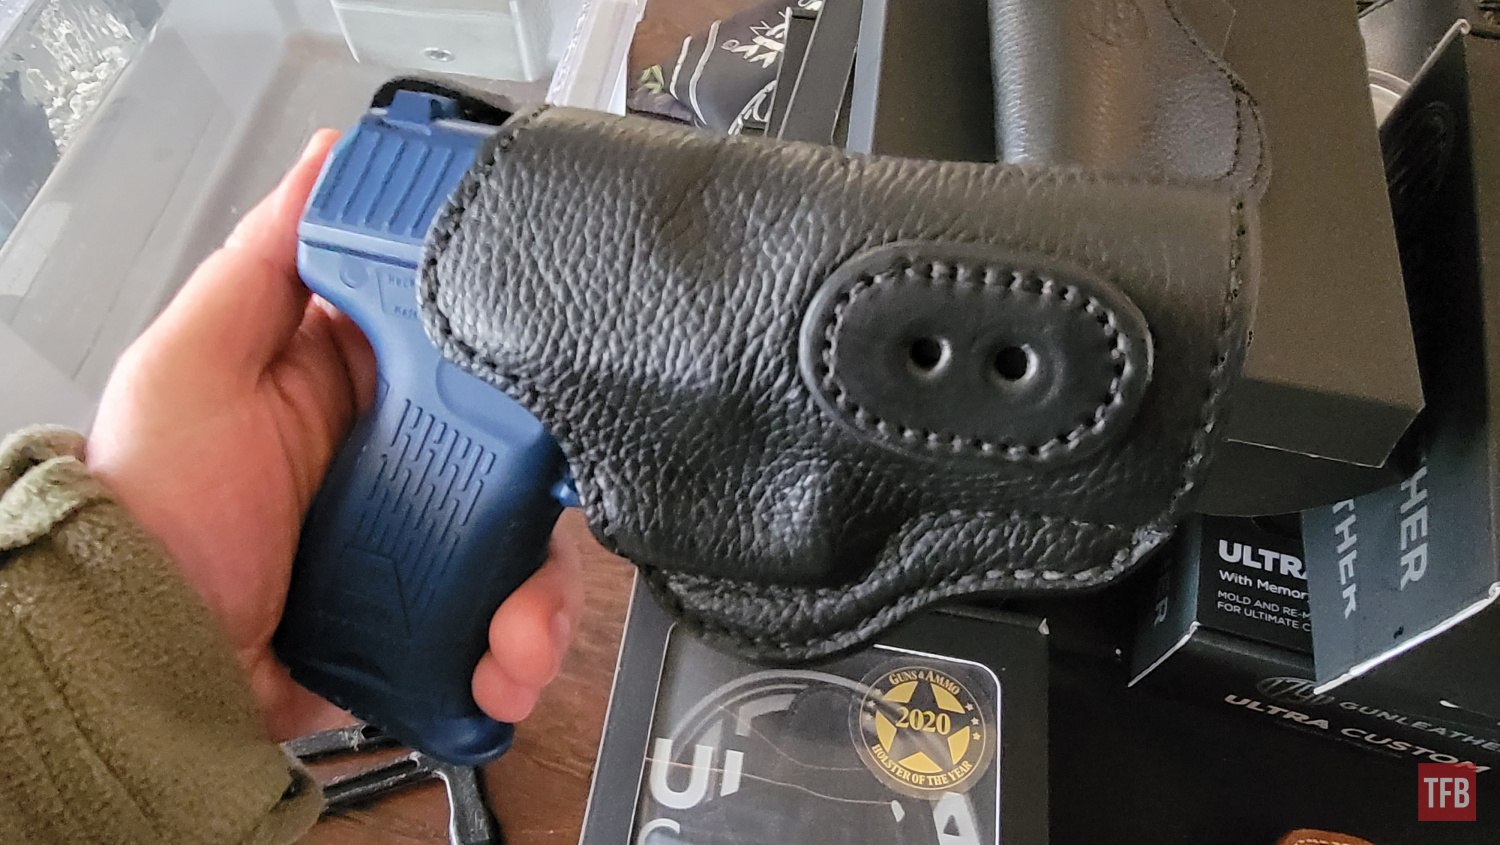 The 1791 Gunleather Ultra Custom OWB - Make your own Leather Holster